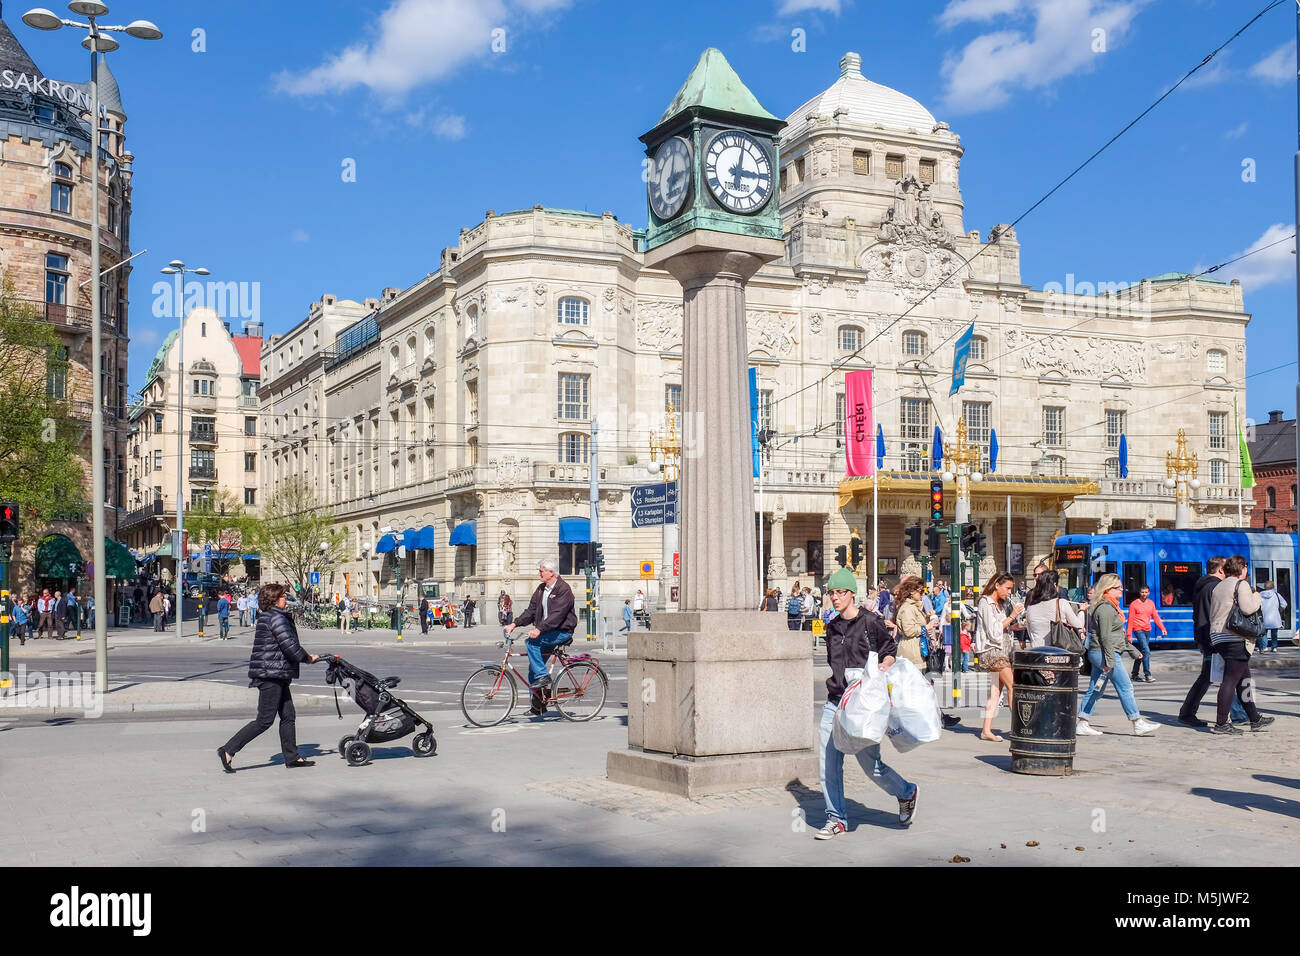 """Dramaten"" the Royal Dramatic theatre at Nybroplan during springtime in Stockhom. - Stock Image"